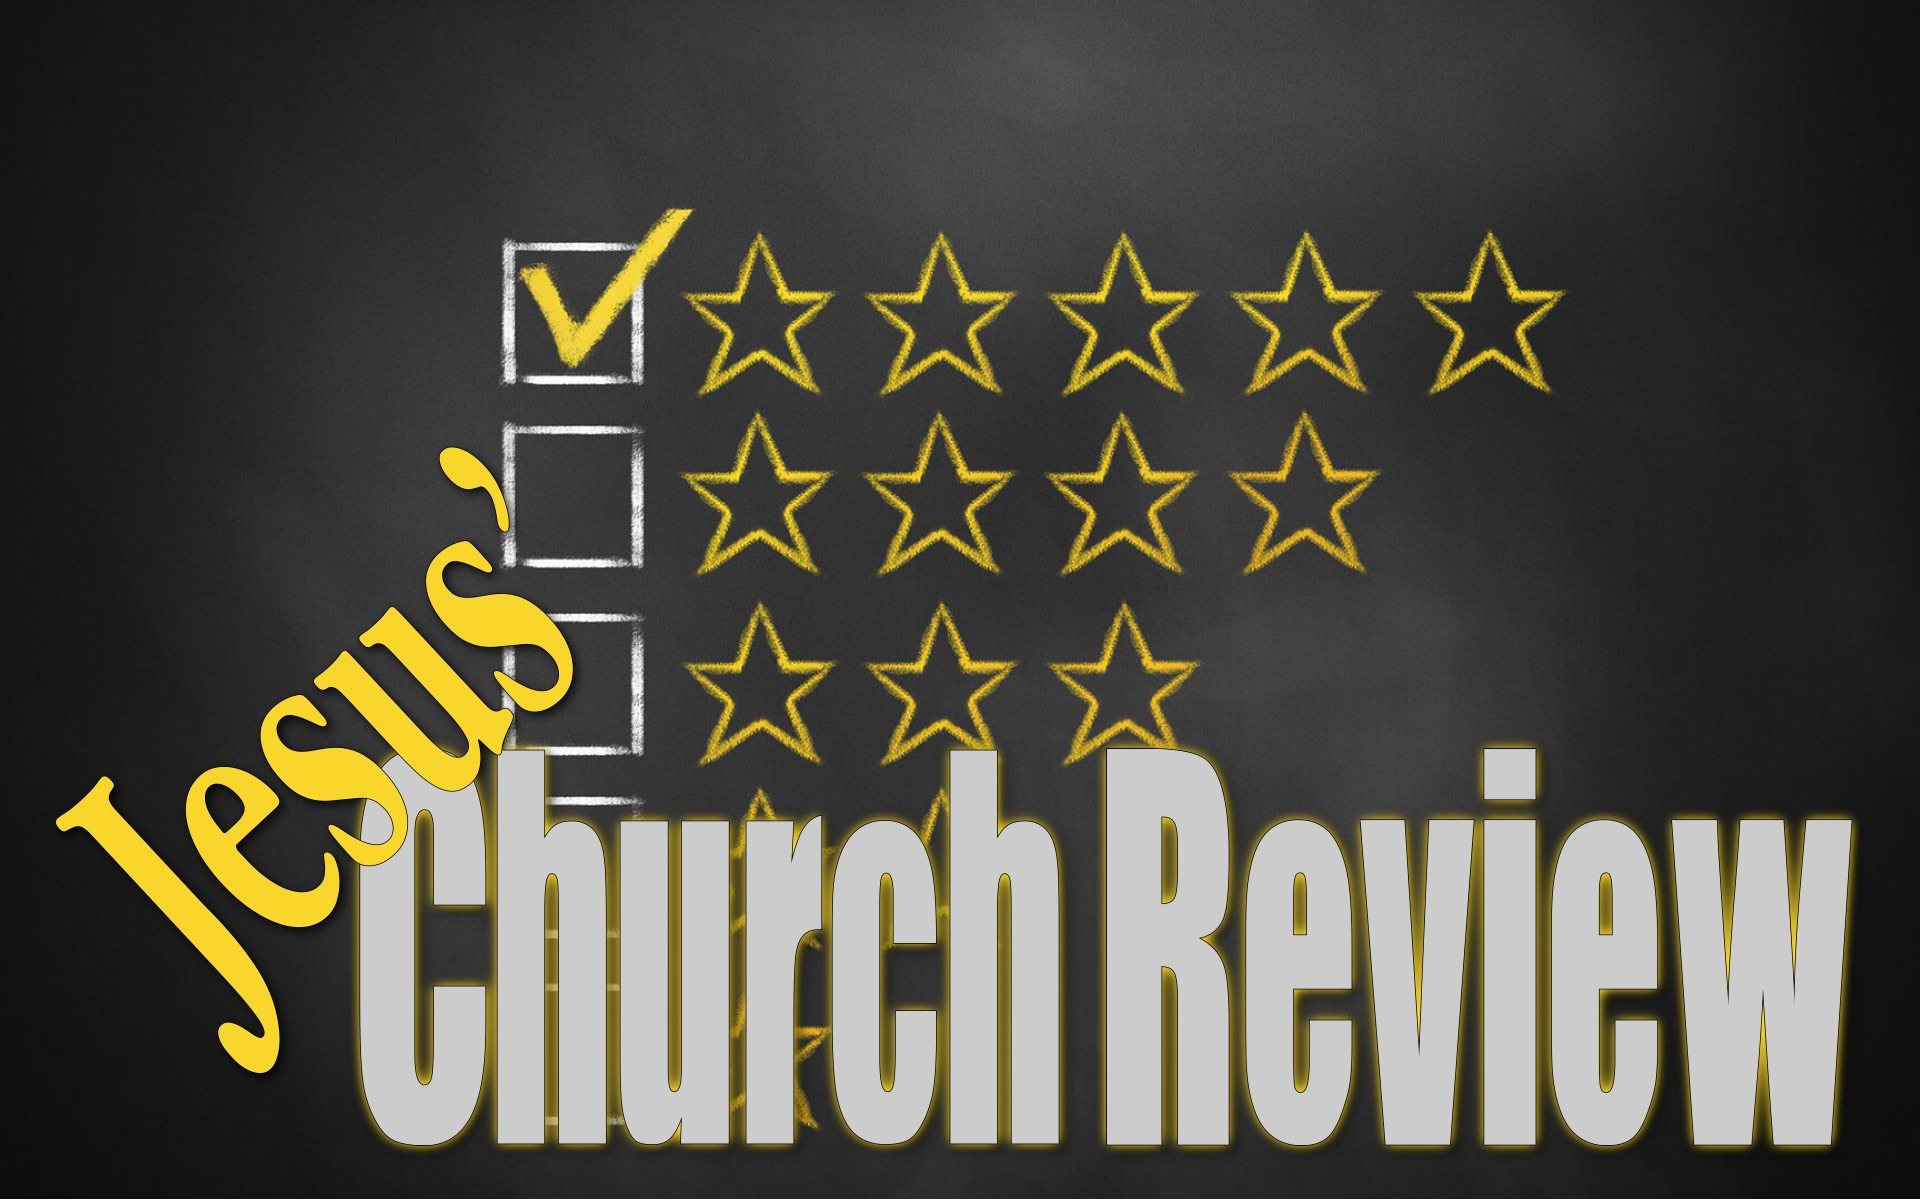 Jesus' Church Review